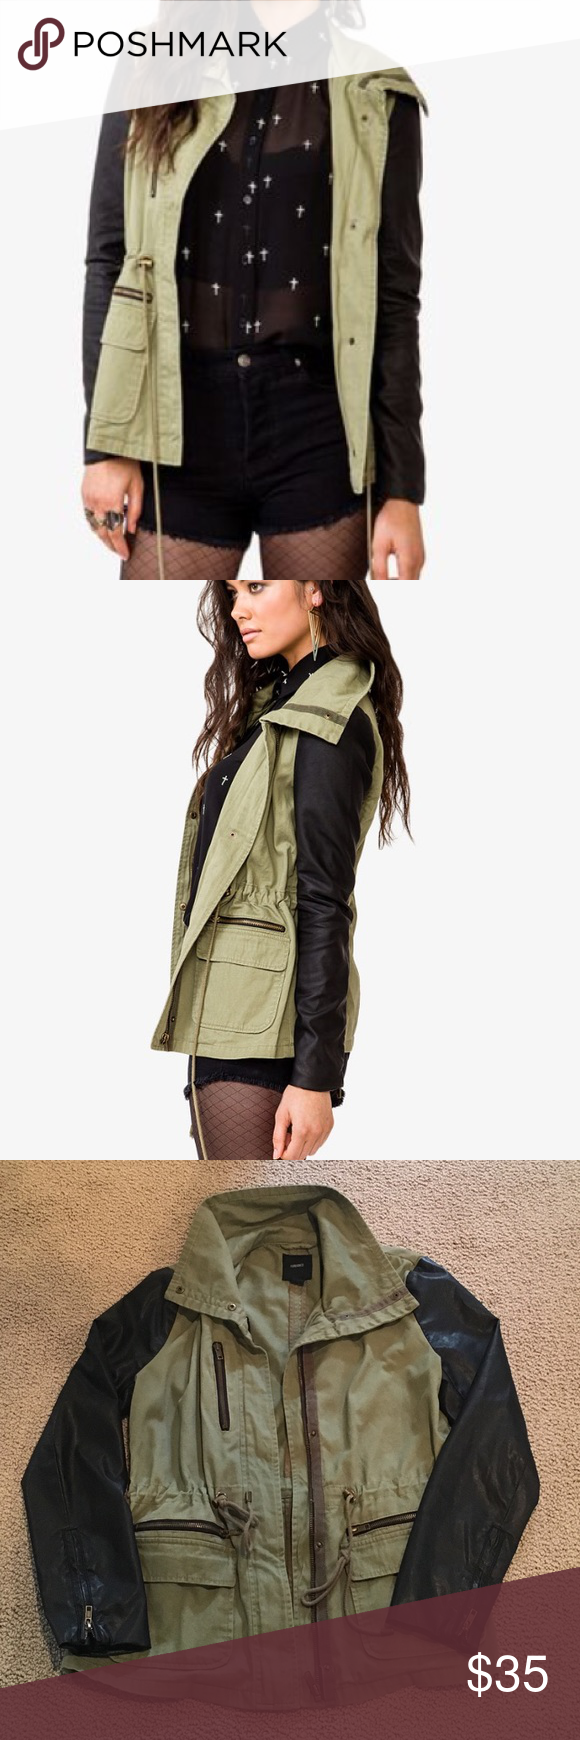 F21 Utility Jacket with Pleather Sleeves Sometimes Forever 21 hits it out of the park. This jacket is an example of that, so cool. Military green with pleather zipper vented sleeves, brass colored hardware, with adjustable waist cinching. Size large but fits like a generous medium. Pristine condition. Forever 21 Jackets & Coats Utility Jackets